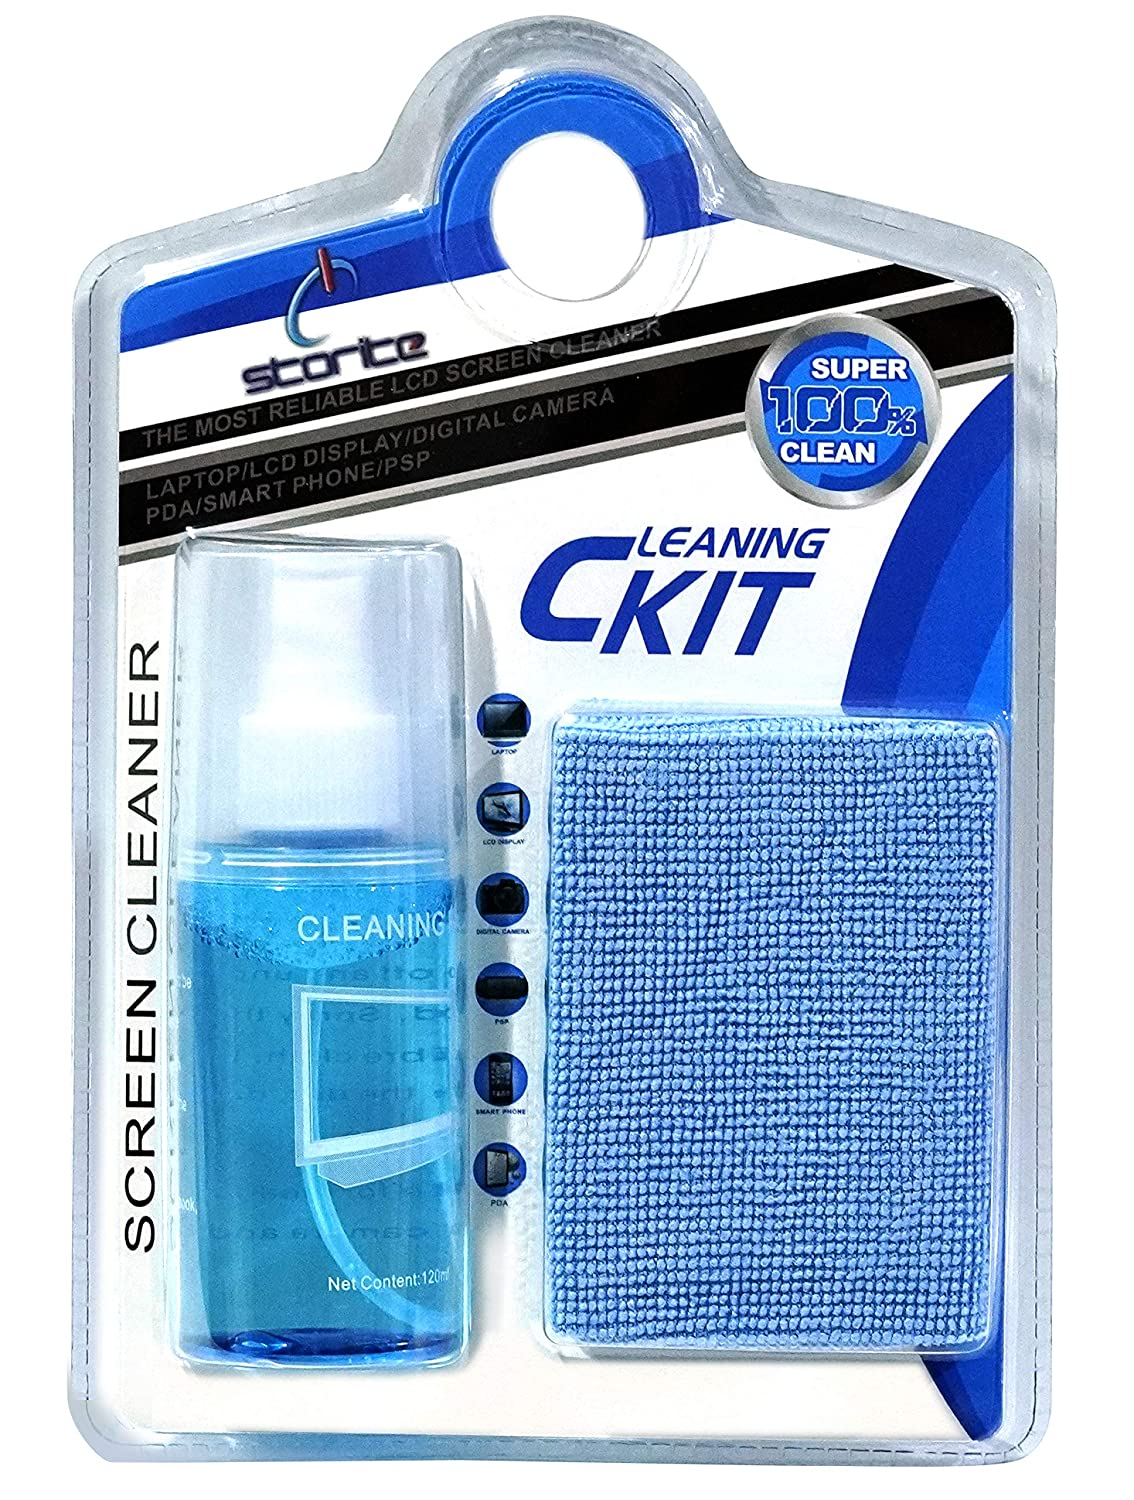 Storite 2 in 1 Screen Cleaning Kit KCL-1023 $5.44 Coupon